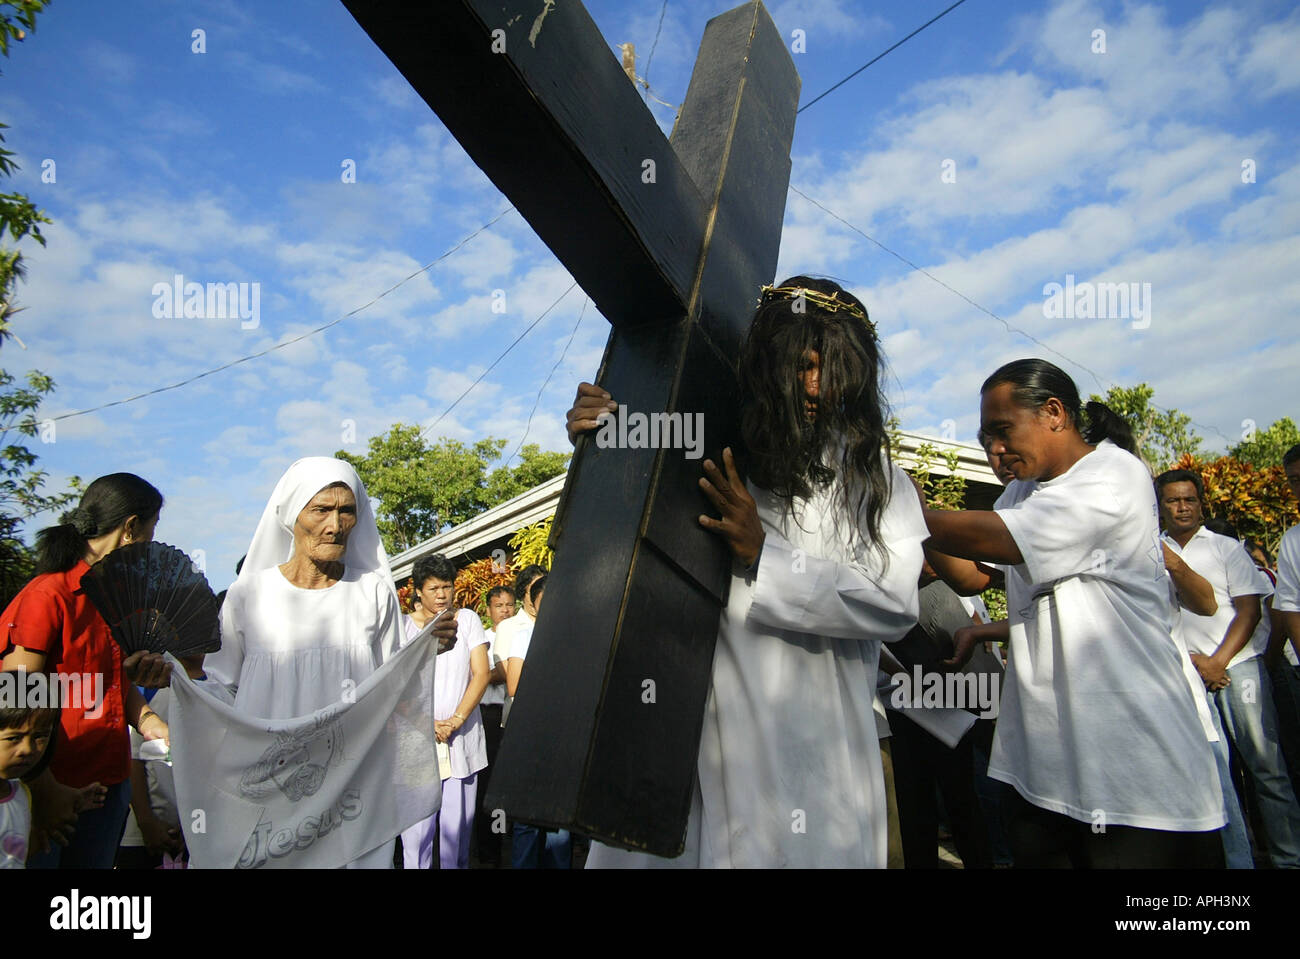 A Filipino portraying Jesus Christ leads a Good Friday procession in Mansalay, Oriental Mindoro, Philippines. Stock Photo